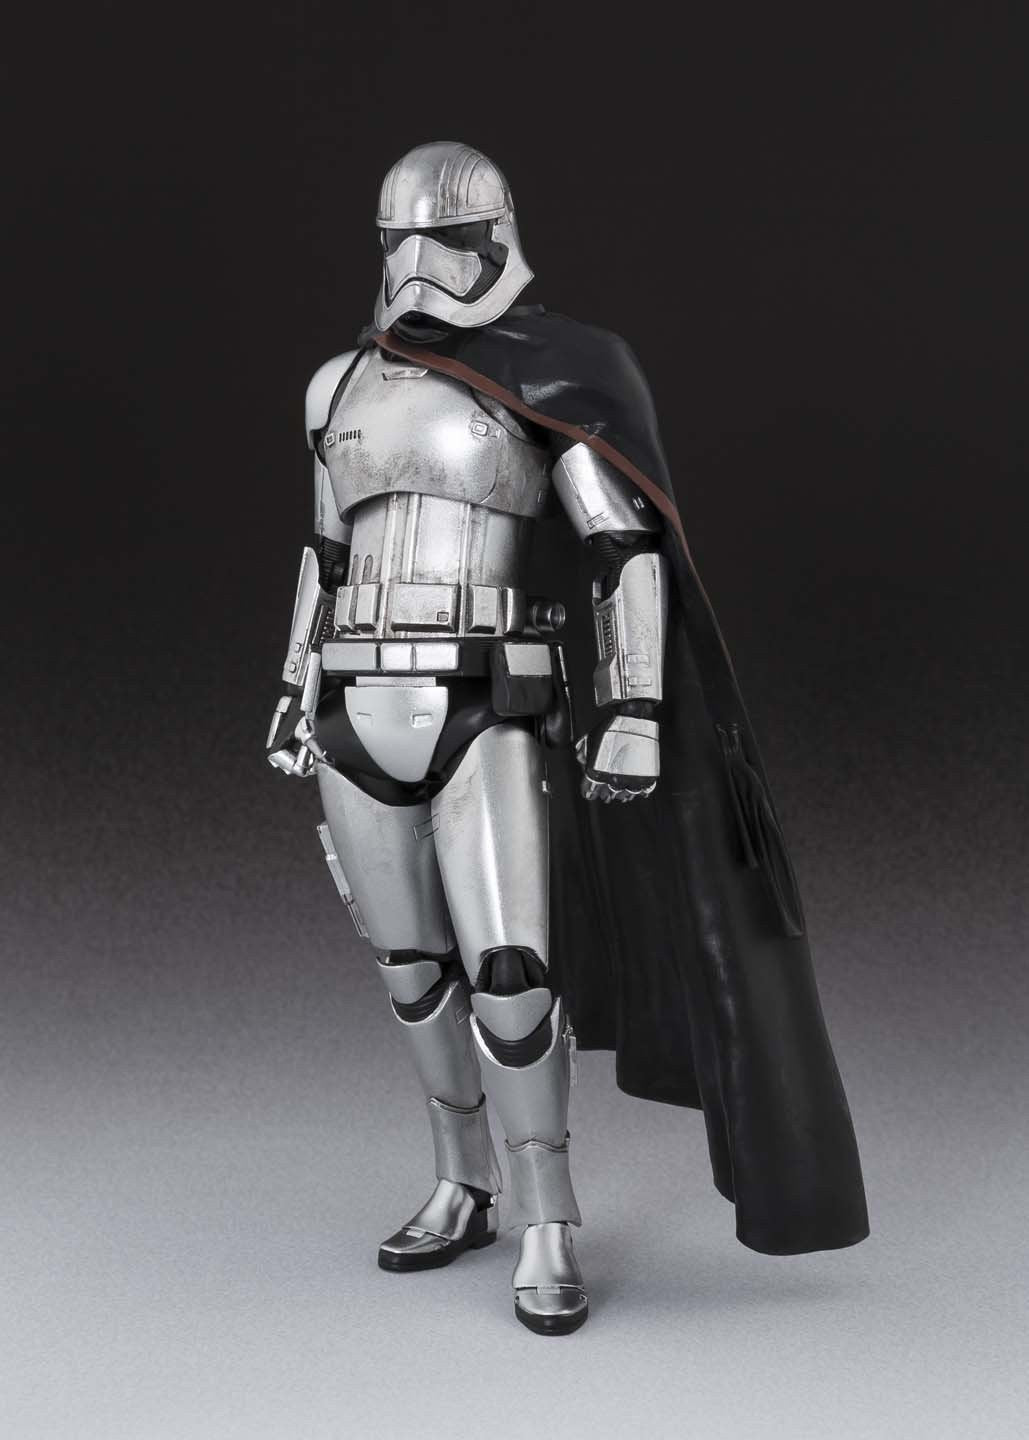 S.H. Figuarts - Star Wars - Captain Phasma